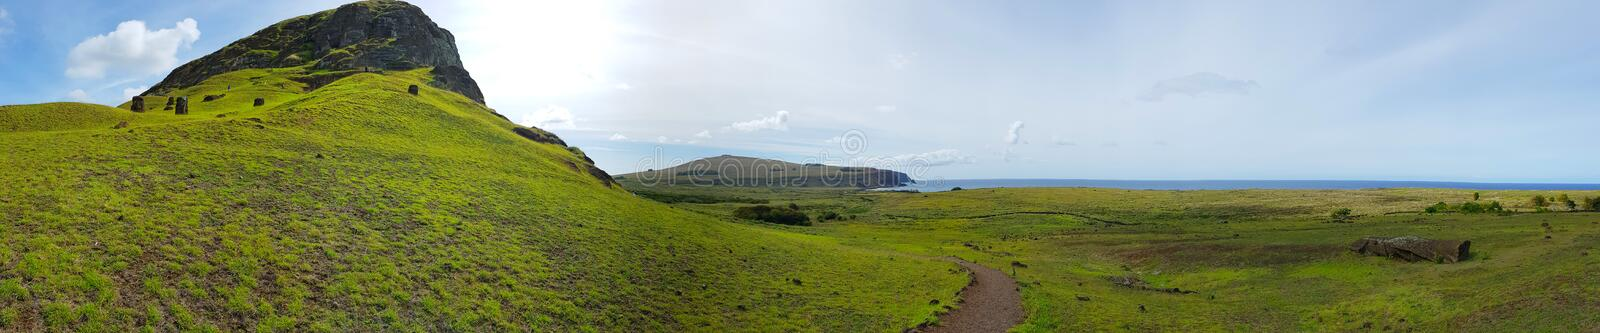 The cave of the moais of the Rano Raraku volcano, Easter Island, Chile royalty free stock image